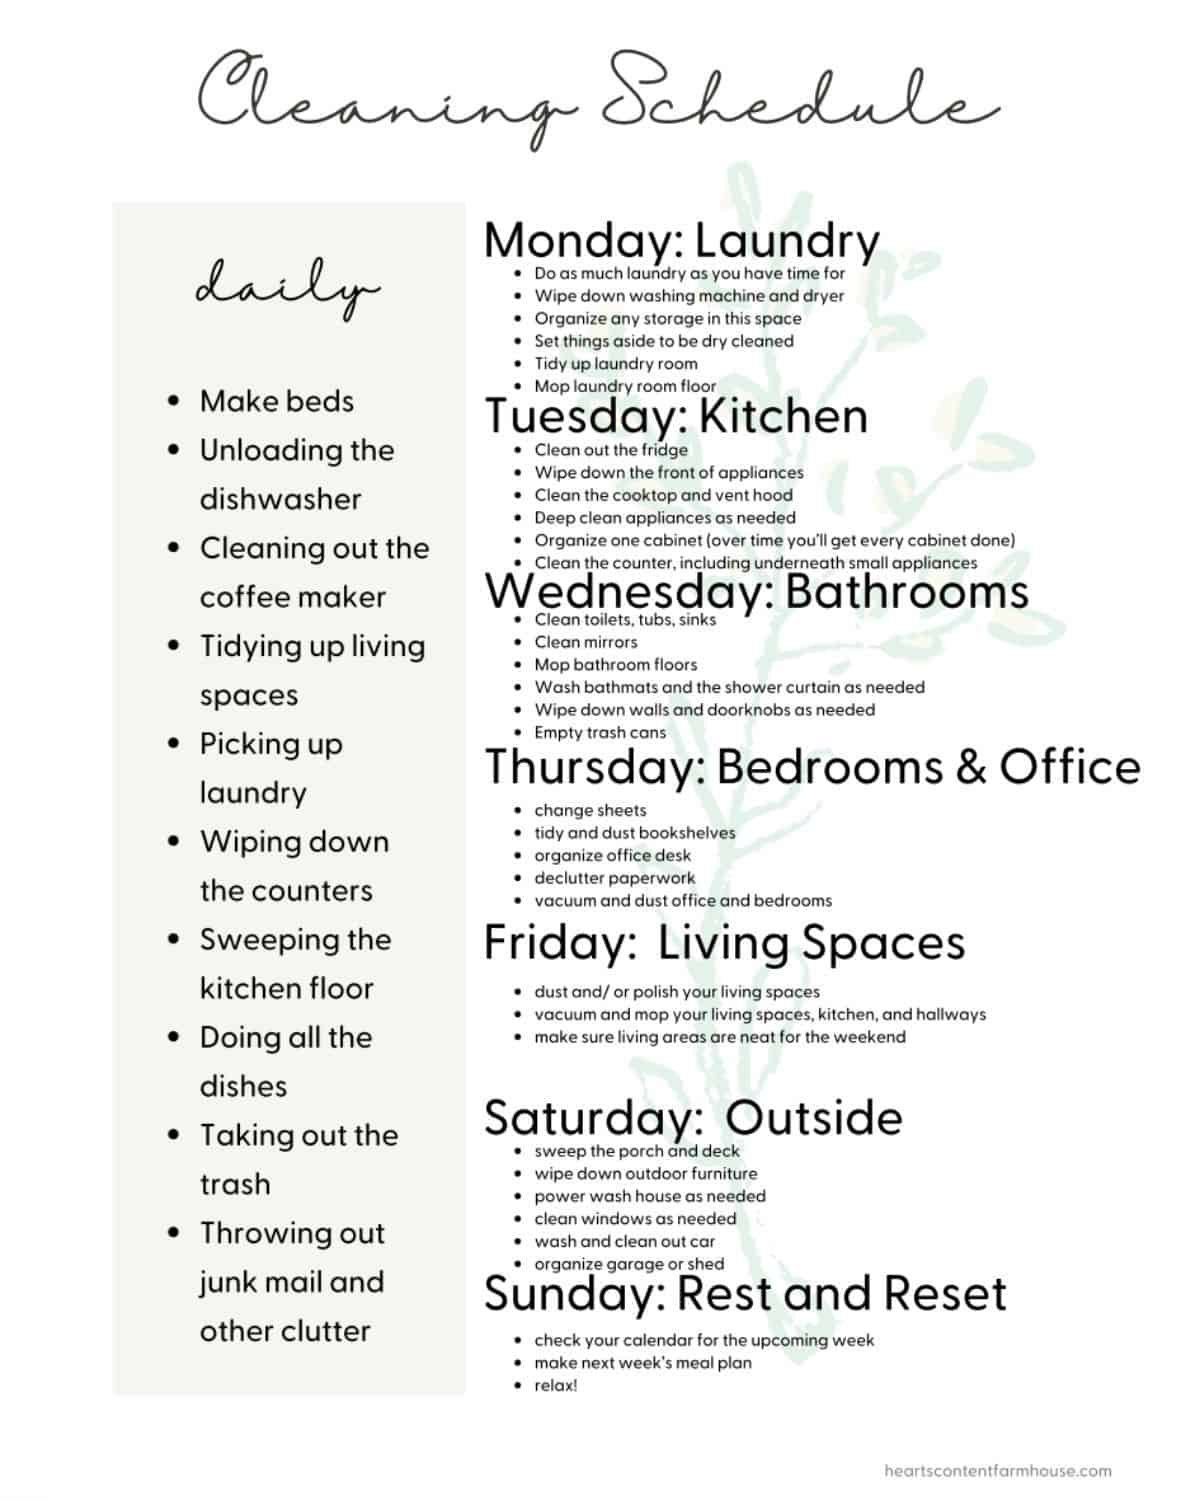 sample cleaning schedule showing what to do each day of thhr week